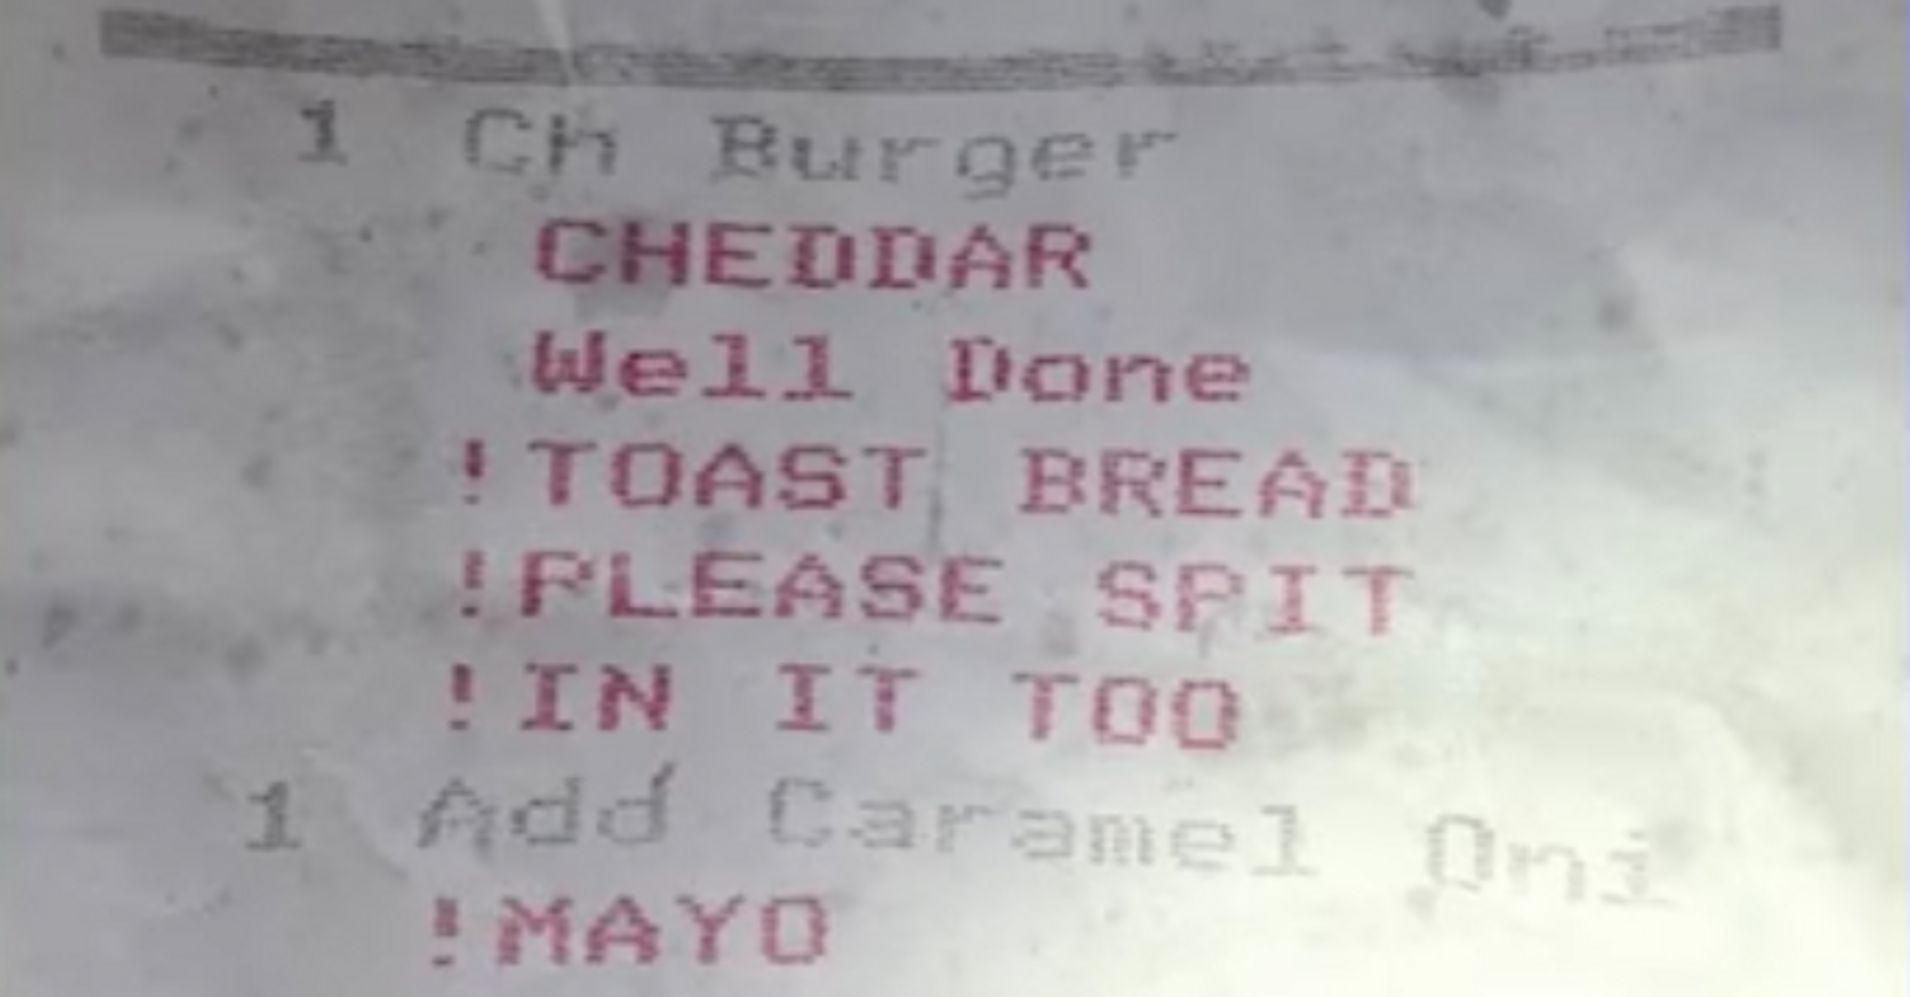 Man Gets Receipt Telling The Cook To Spit In His Food | HuffPost